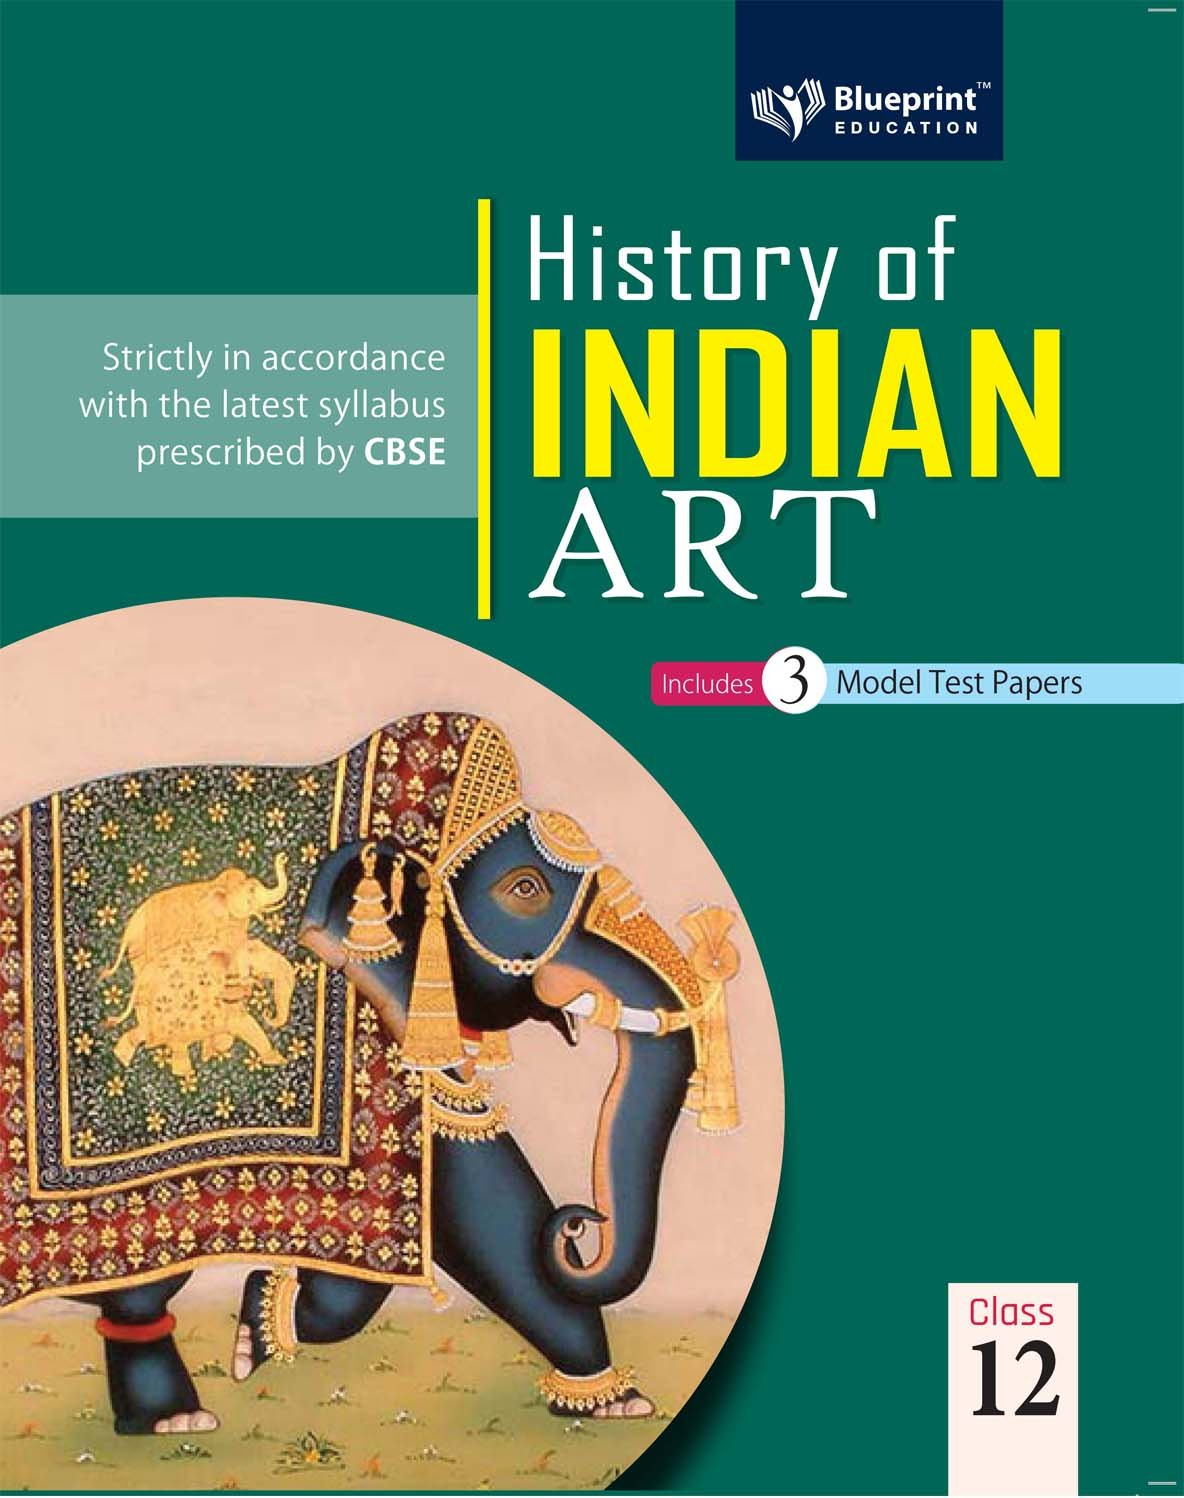 Buy history of indian art 12 book online at low prices in india buy history of indian art 12 book online at low prices in india history of indian art 12 reviews ratings amazon malvernweather Choice Image